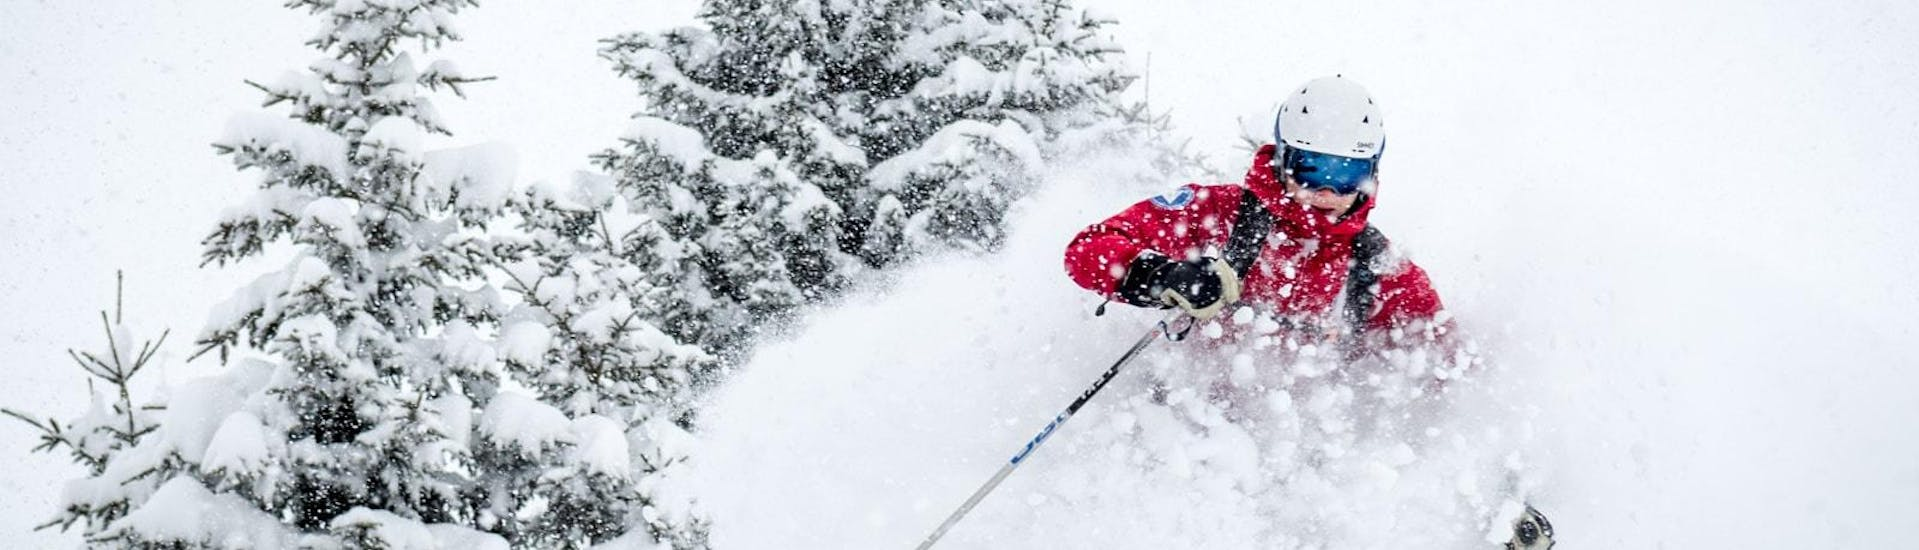 Private Off-Piste Skiing & Snowboarding Lessons